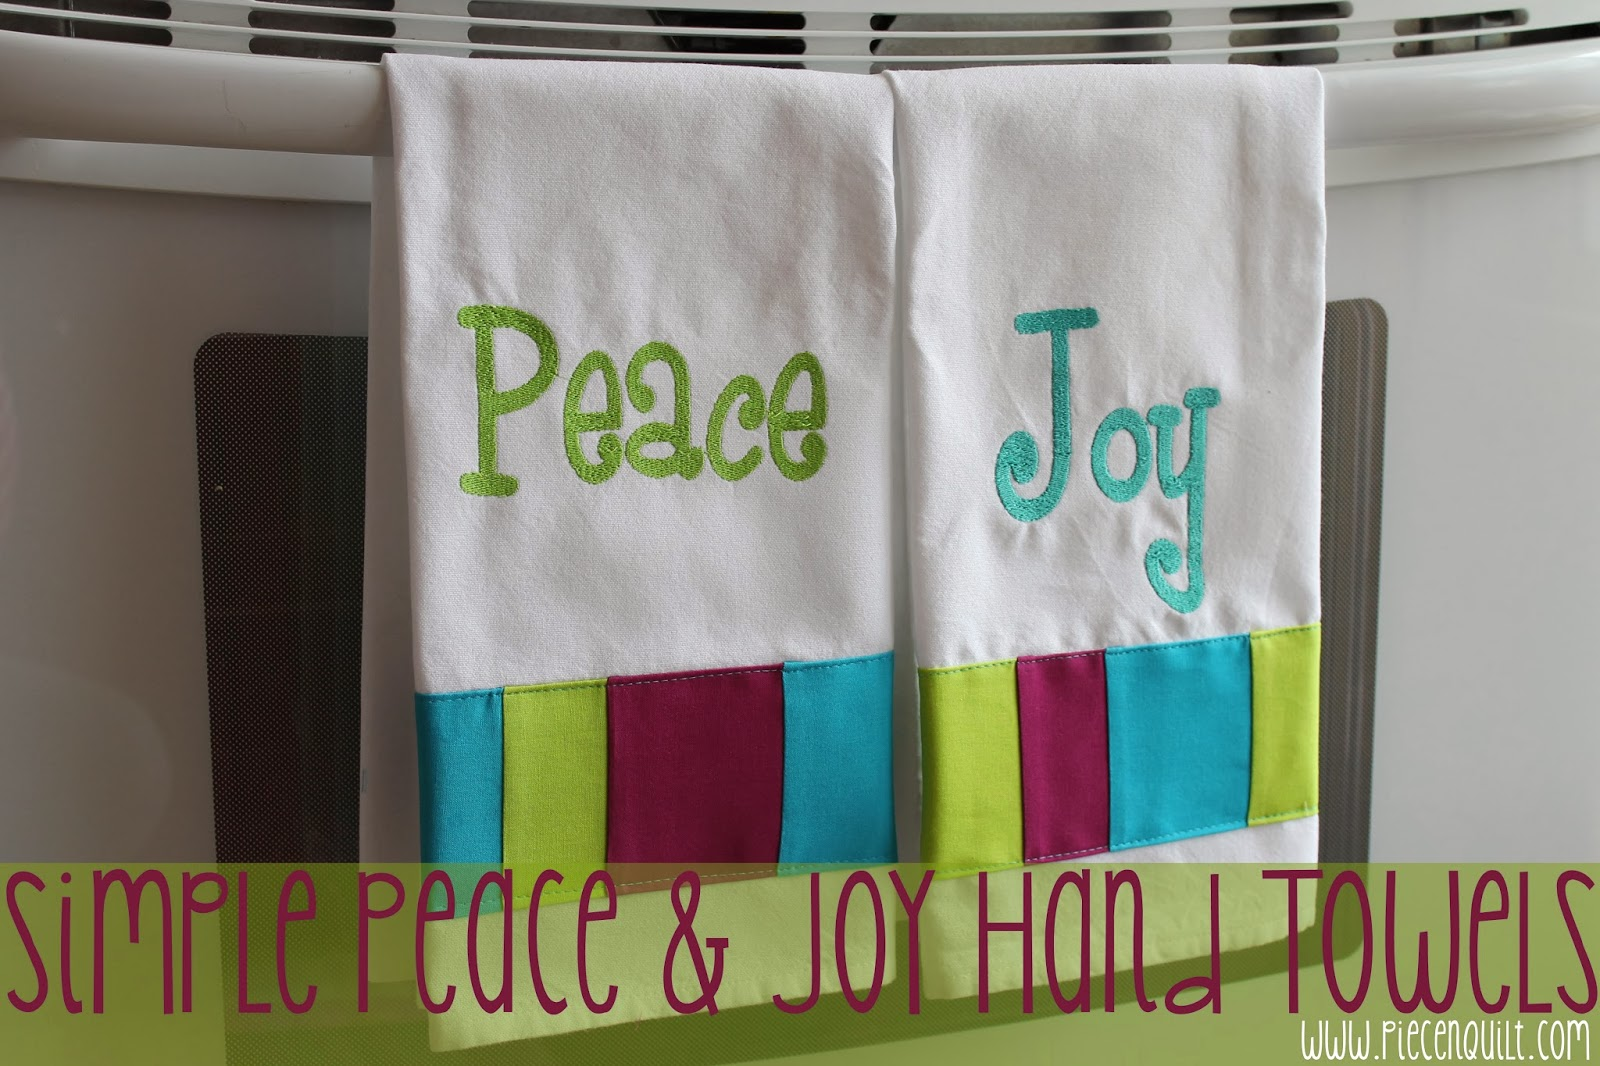 Piece n quilt simple peace joy hand towels - Seven mistakes we make when using towels ...